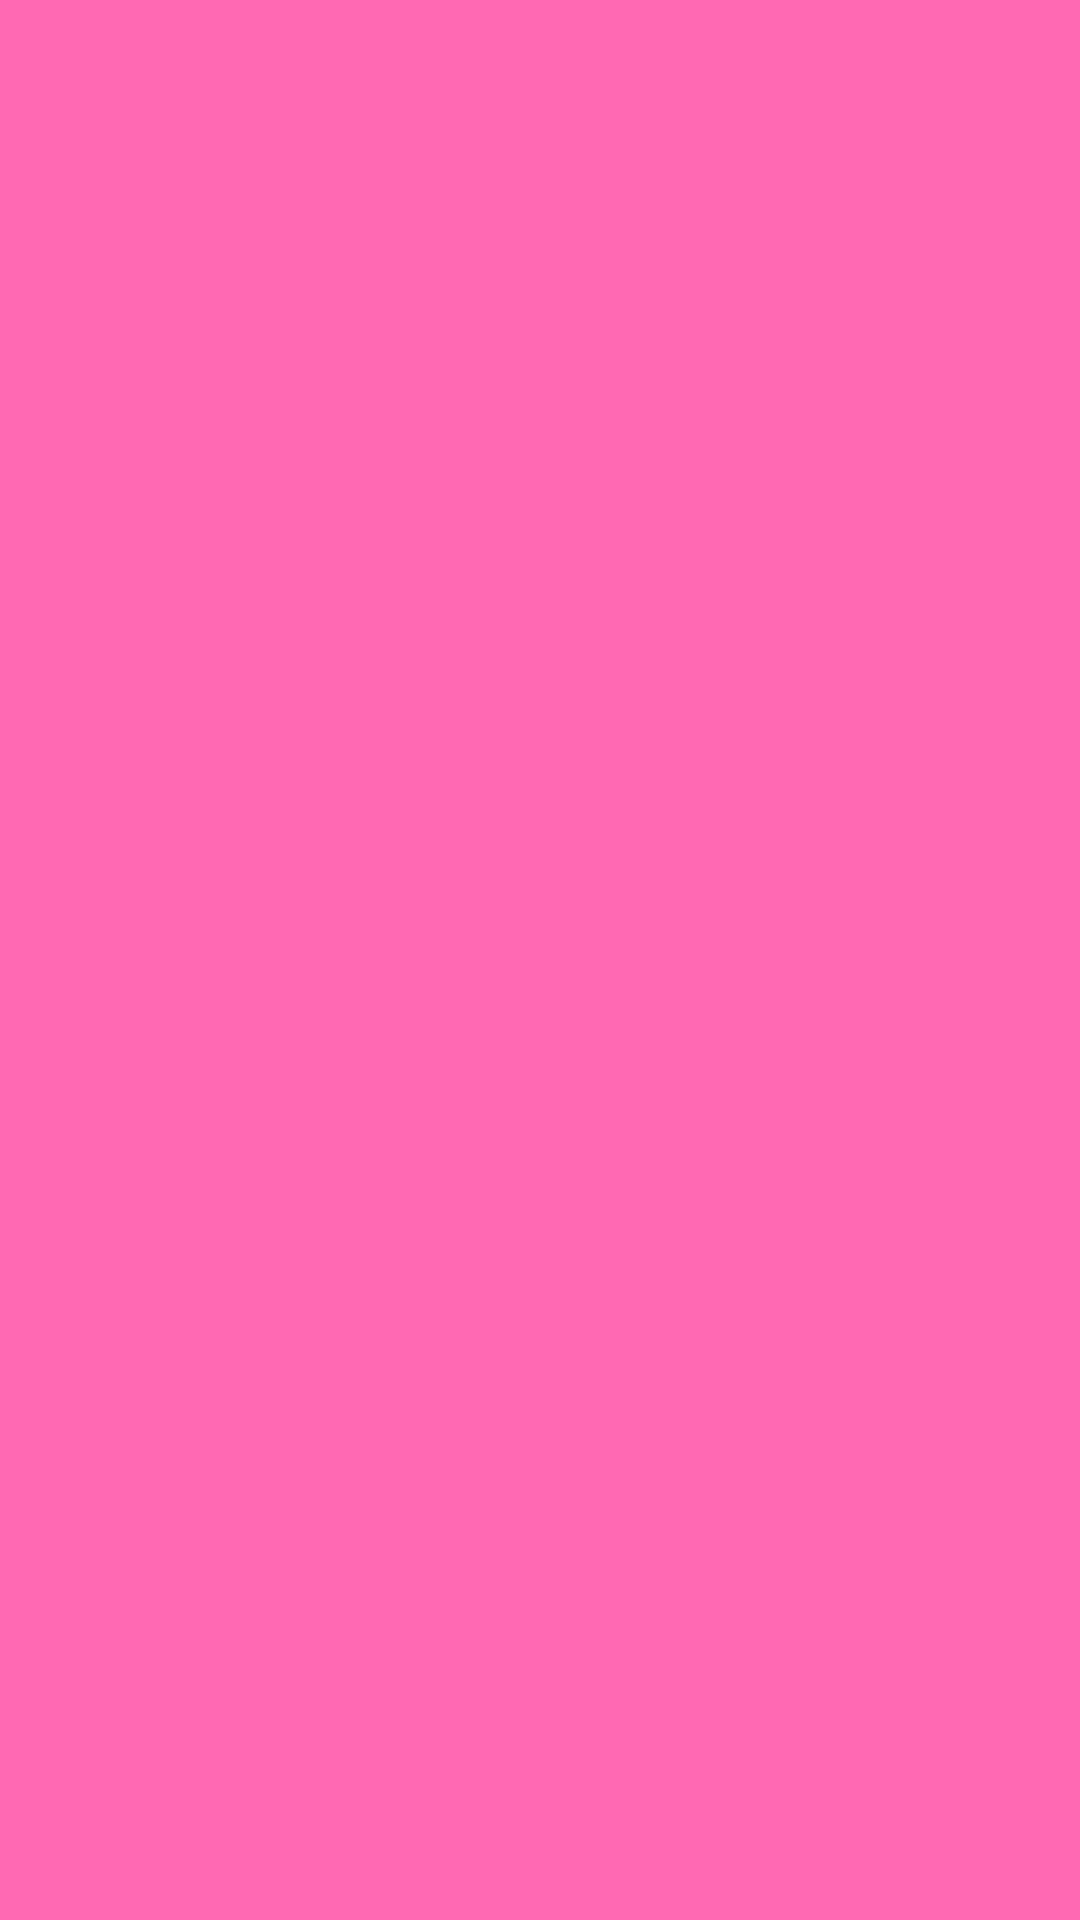 1080x1920 Hot Pink Solid Color Background